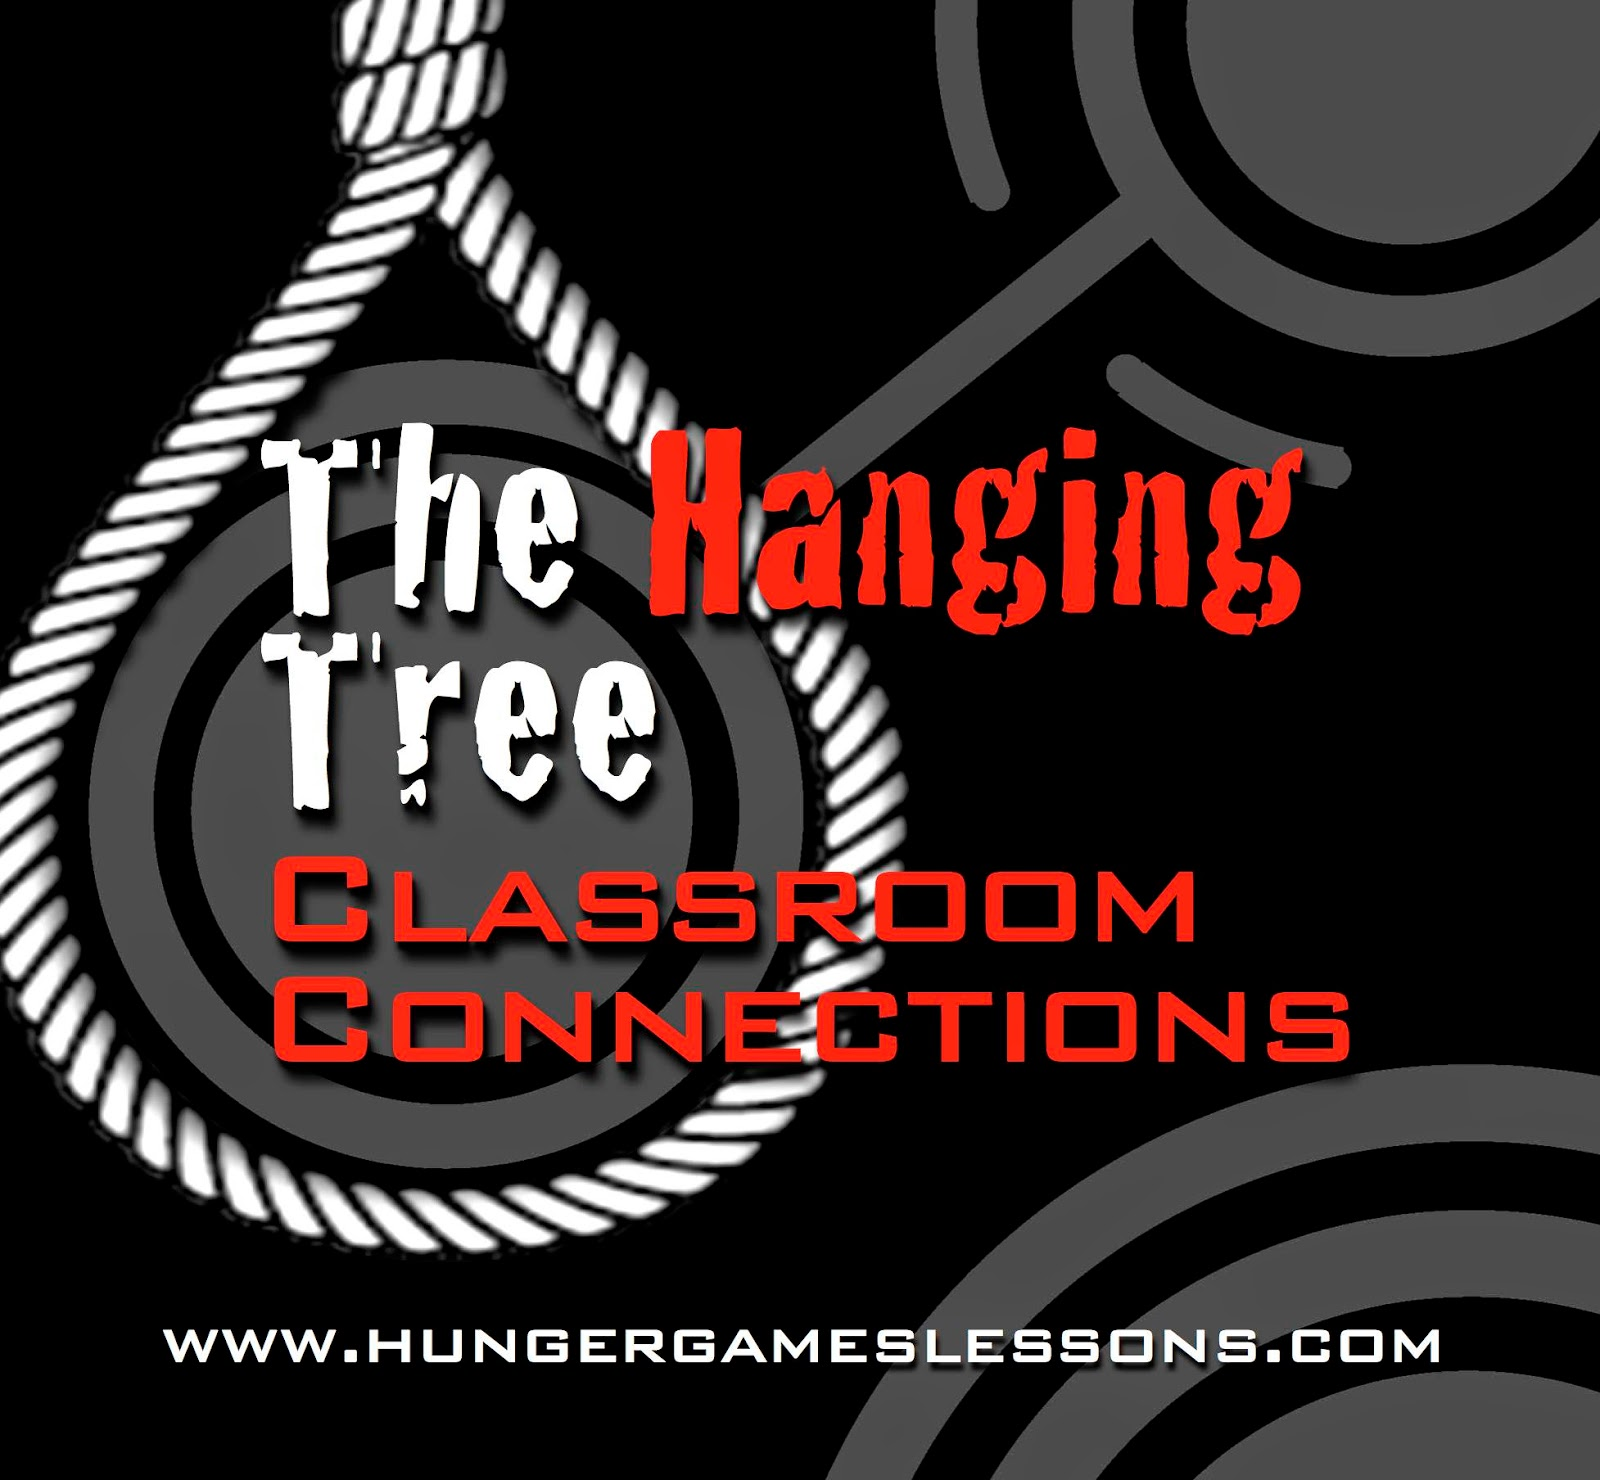 The Hanging Tree (Mockingjay) - Classroom Connections